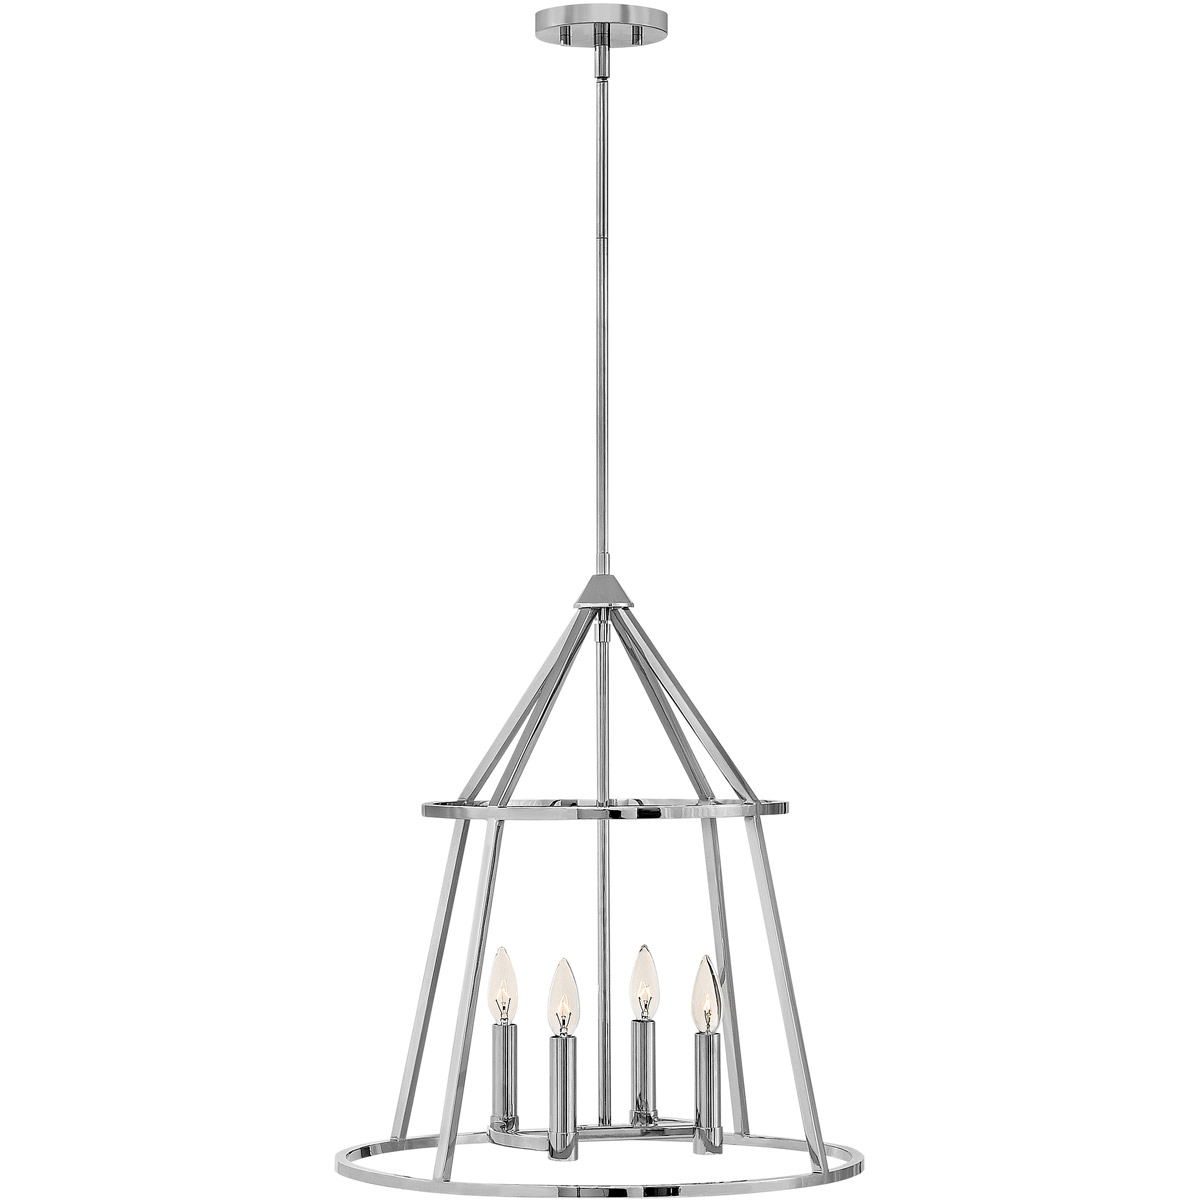 Pendants 4 Light Fixtures With Polished Nickel Finish